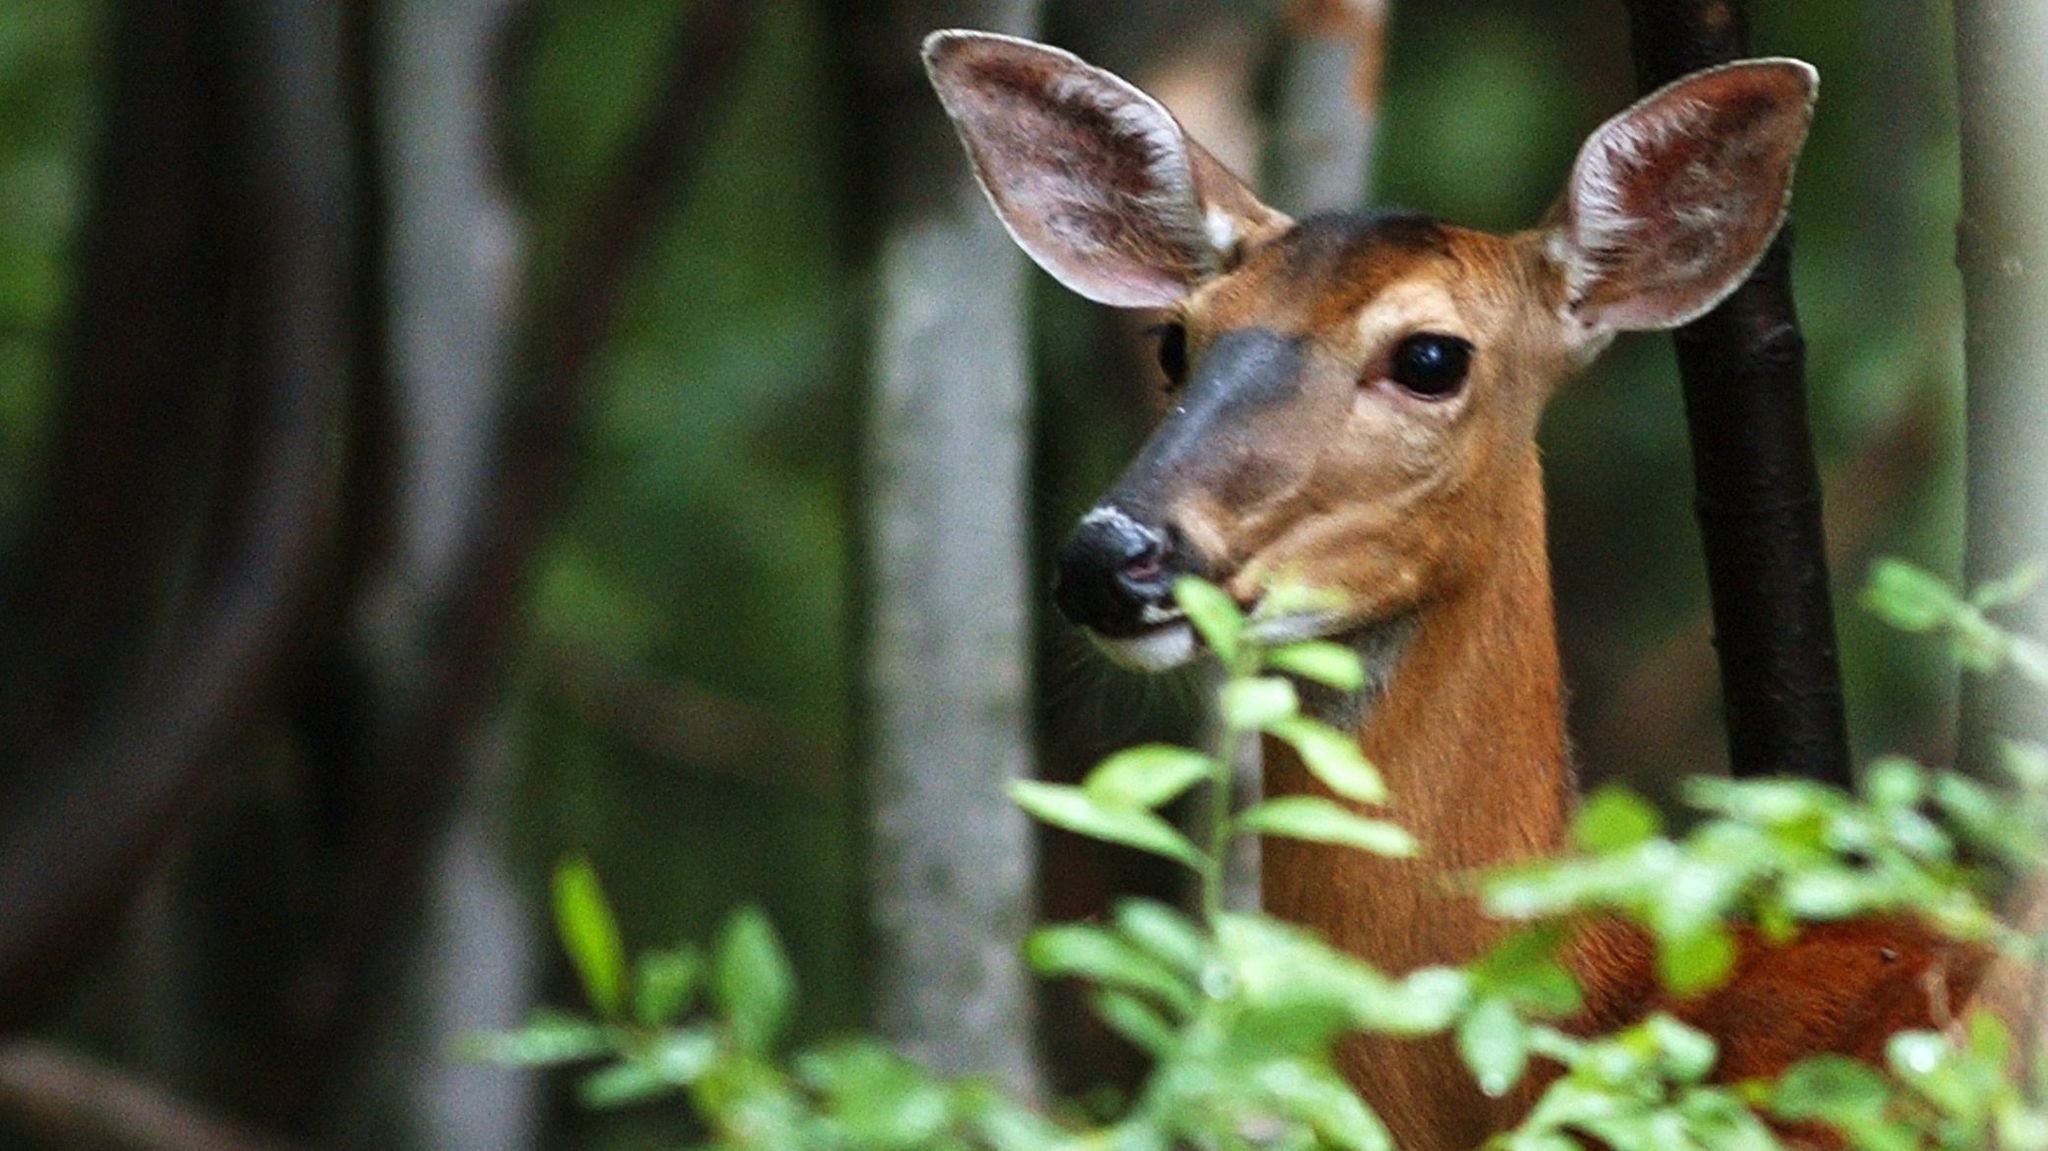 Gardening: Help! Deer are eating all of our plants - The Morning Call